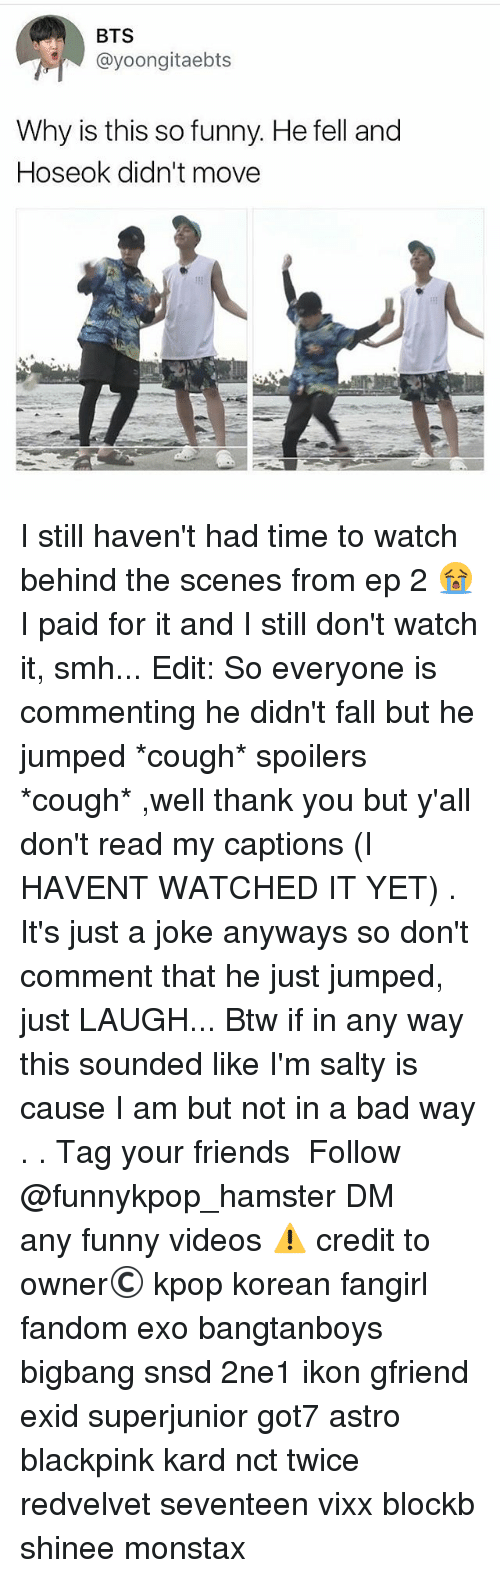 Bad, Fall, and Friends: BTS  @yoongitaebts  Why is this so funny. He fell and  Hoseok didn't move I still haven't had time to watch behind the scenes from ep 2 😭 I paid for it and I still don't watch it, smh... Edit: So everyone is commenting he didn't fall but he jumped *cough* spoilers *cough* ,well thank you but y'all don't read my captions (I HAVENT WATCHED IT YET) . It's just a joke anyways so don't comment that he just jumped, just LAUGH... Btw if in any way this sounded like I'm salty is cause I am but not in a bad way . . 》Tag your friends 》》 Follow @funnykpop_hamster 》》》DM any funny videos ⚠ credit to owner© kpop korean fangirl fandom exo bangtanboys bigbang snsd 2ne1 ikon gfriend exid superjunior got7 astro blackpink kard nct twice redvelvet seventeen vixx blockb shinee monstax